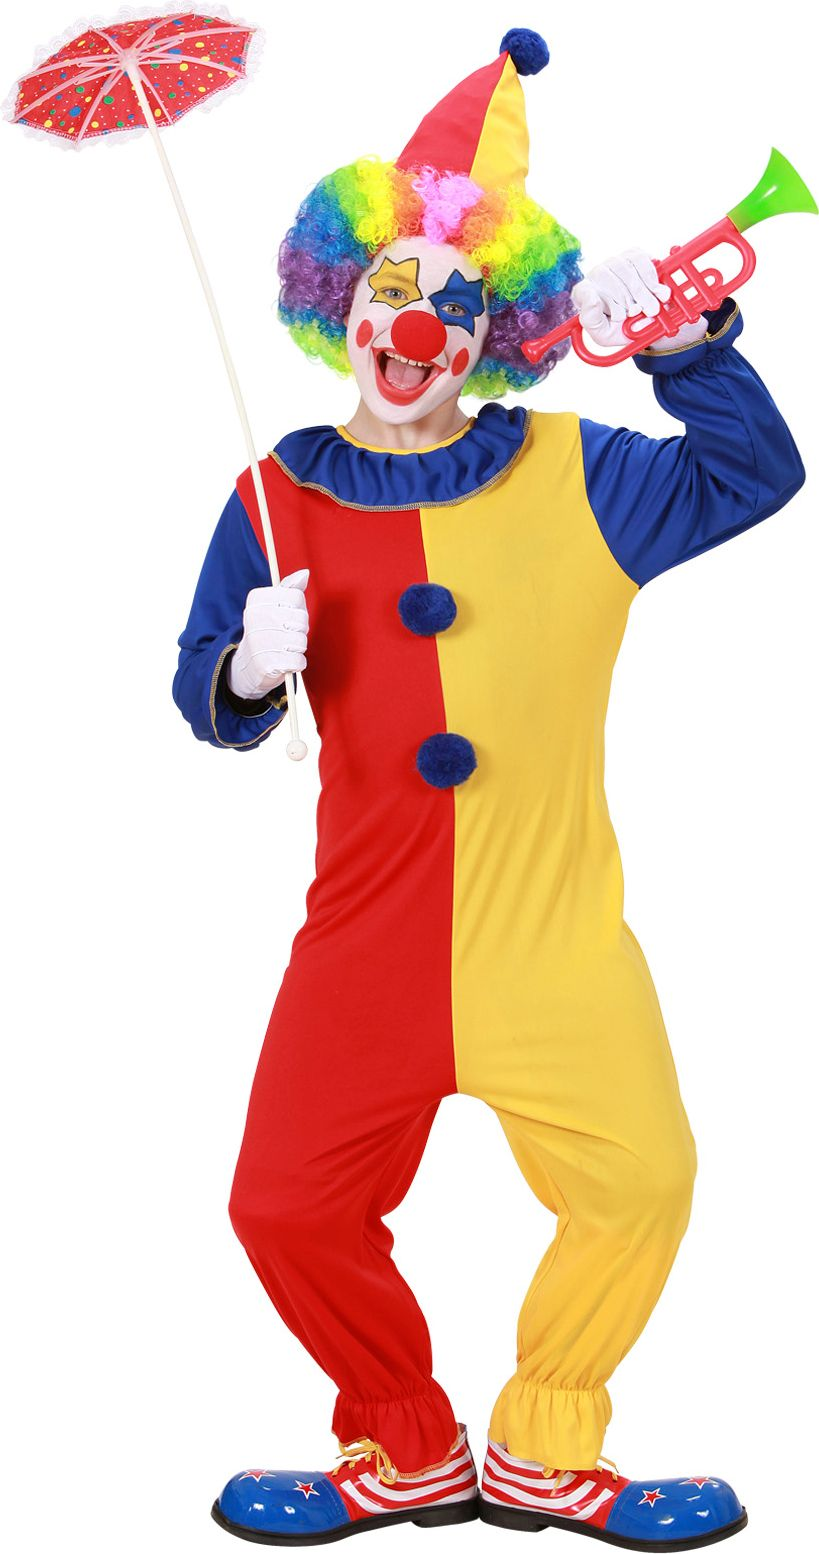 Clown outfit kind